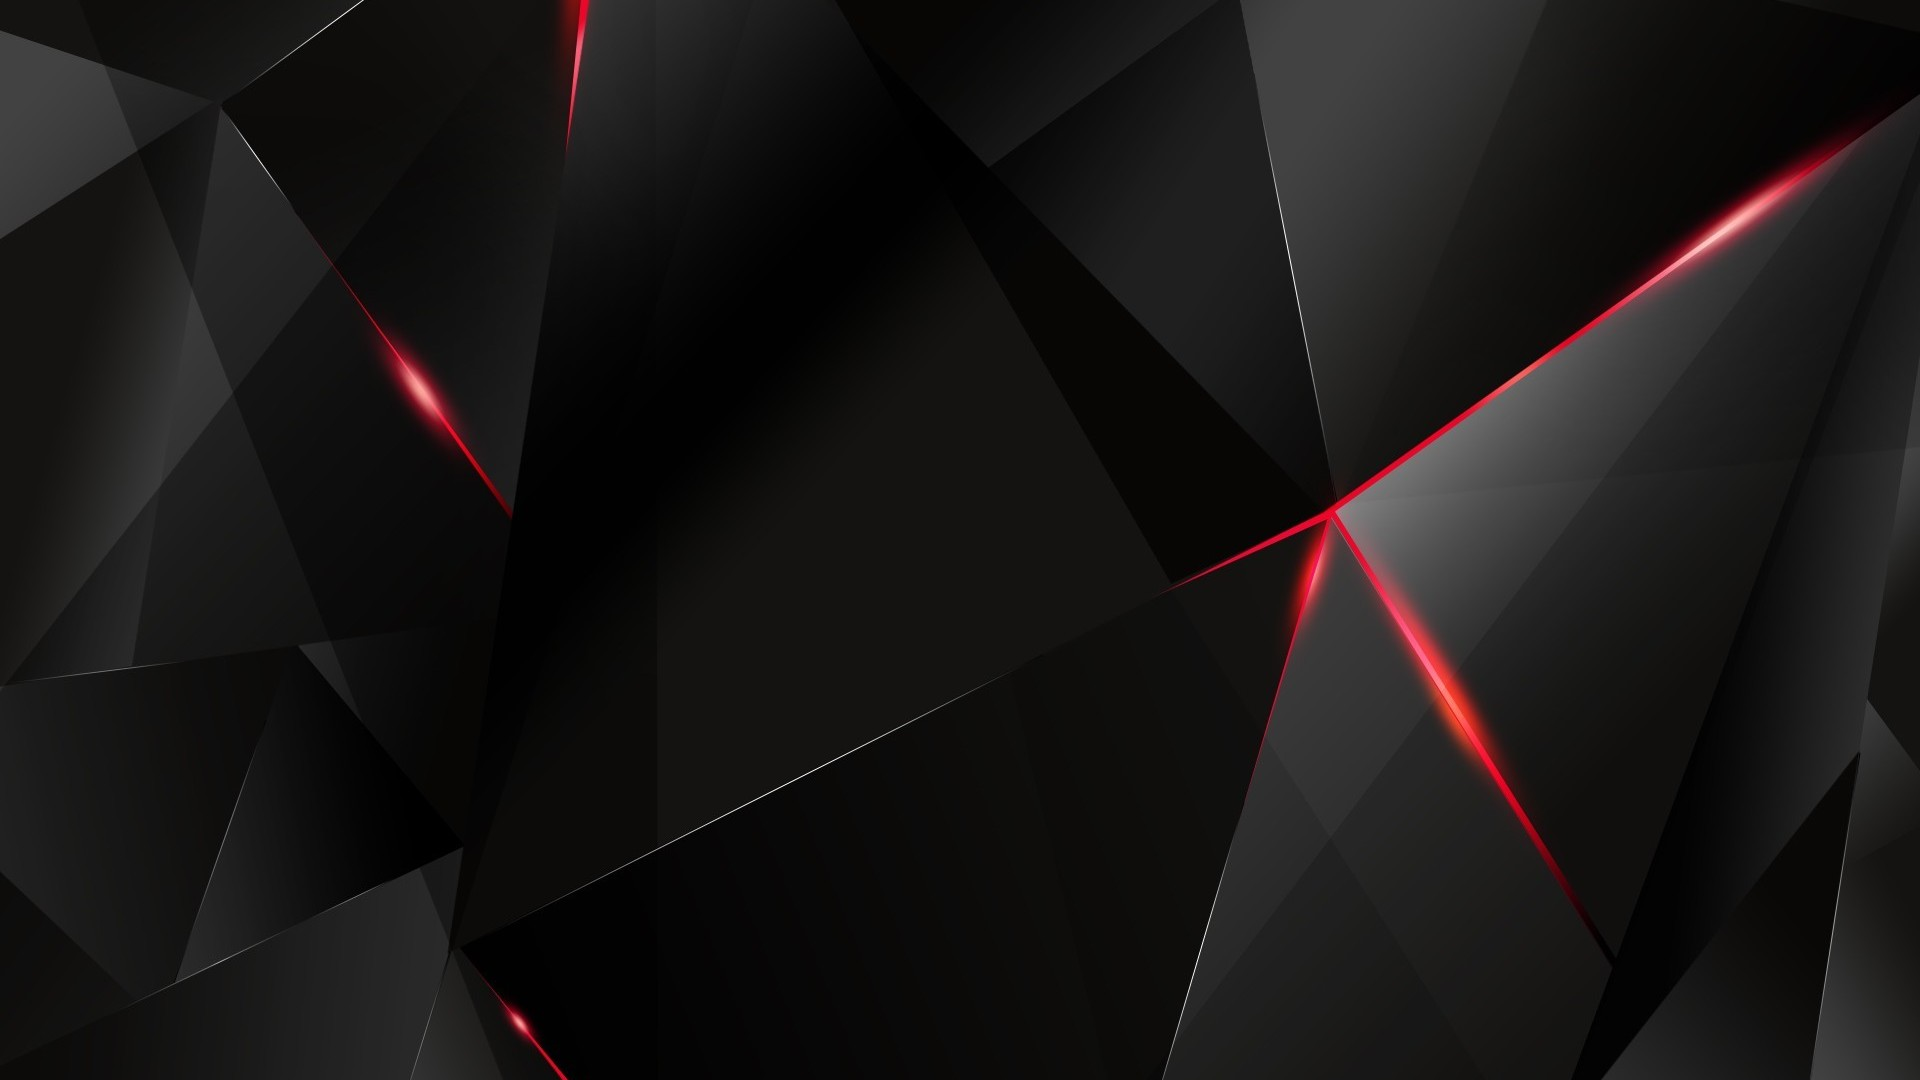 Black Abstract Wallpaper HD - WallpaperSafari